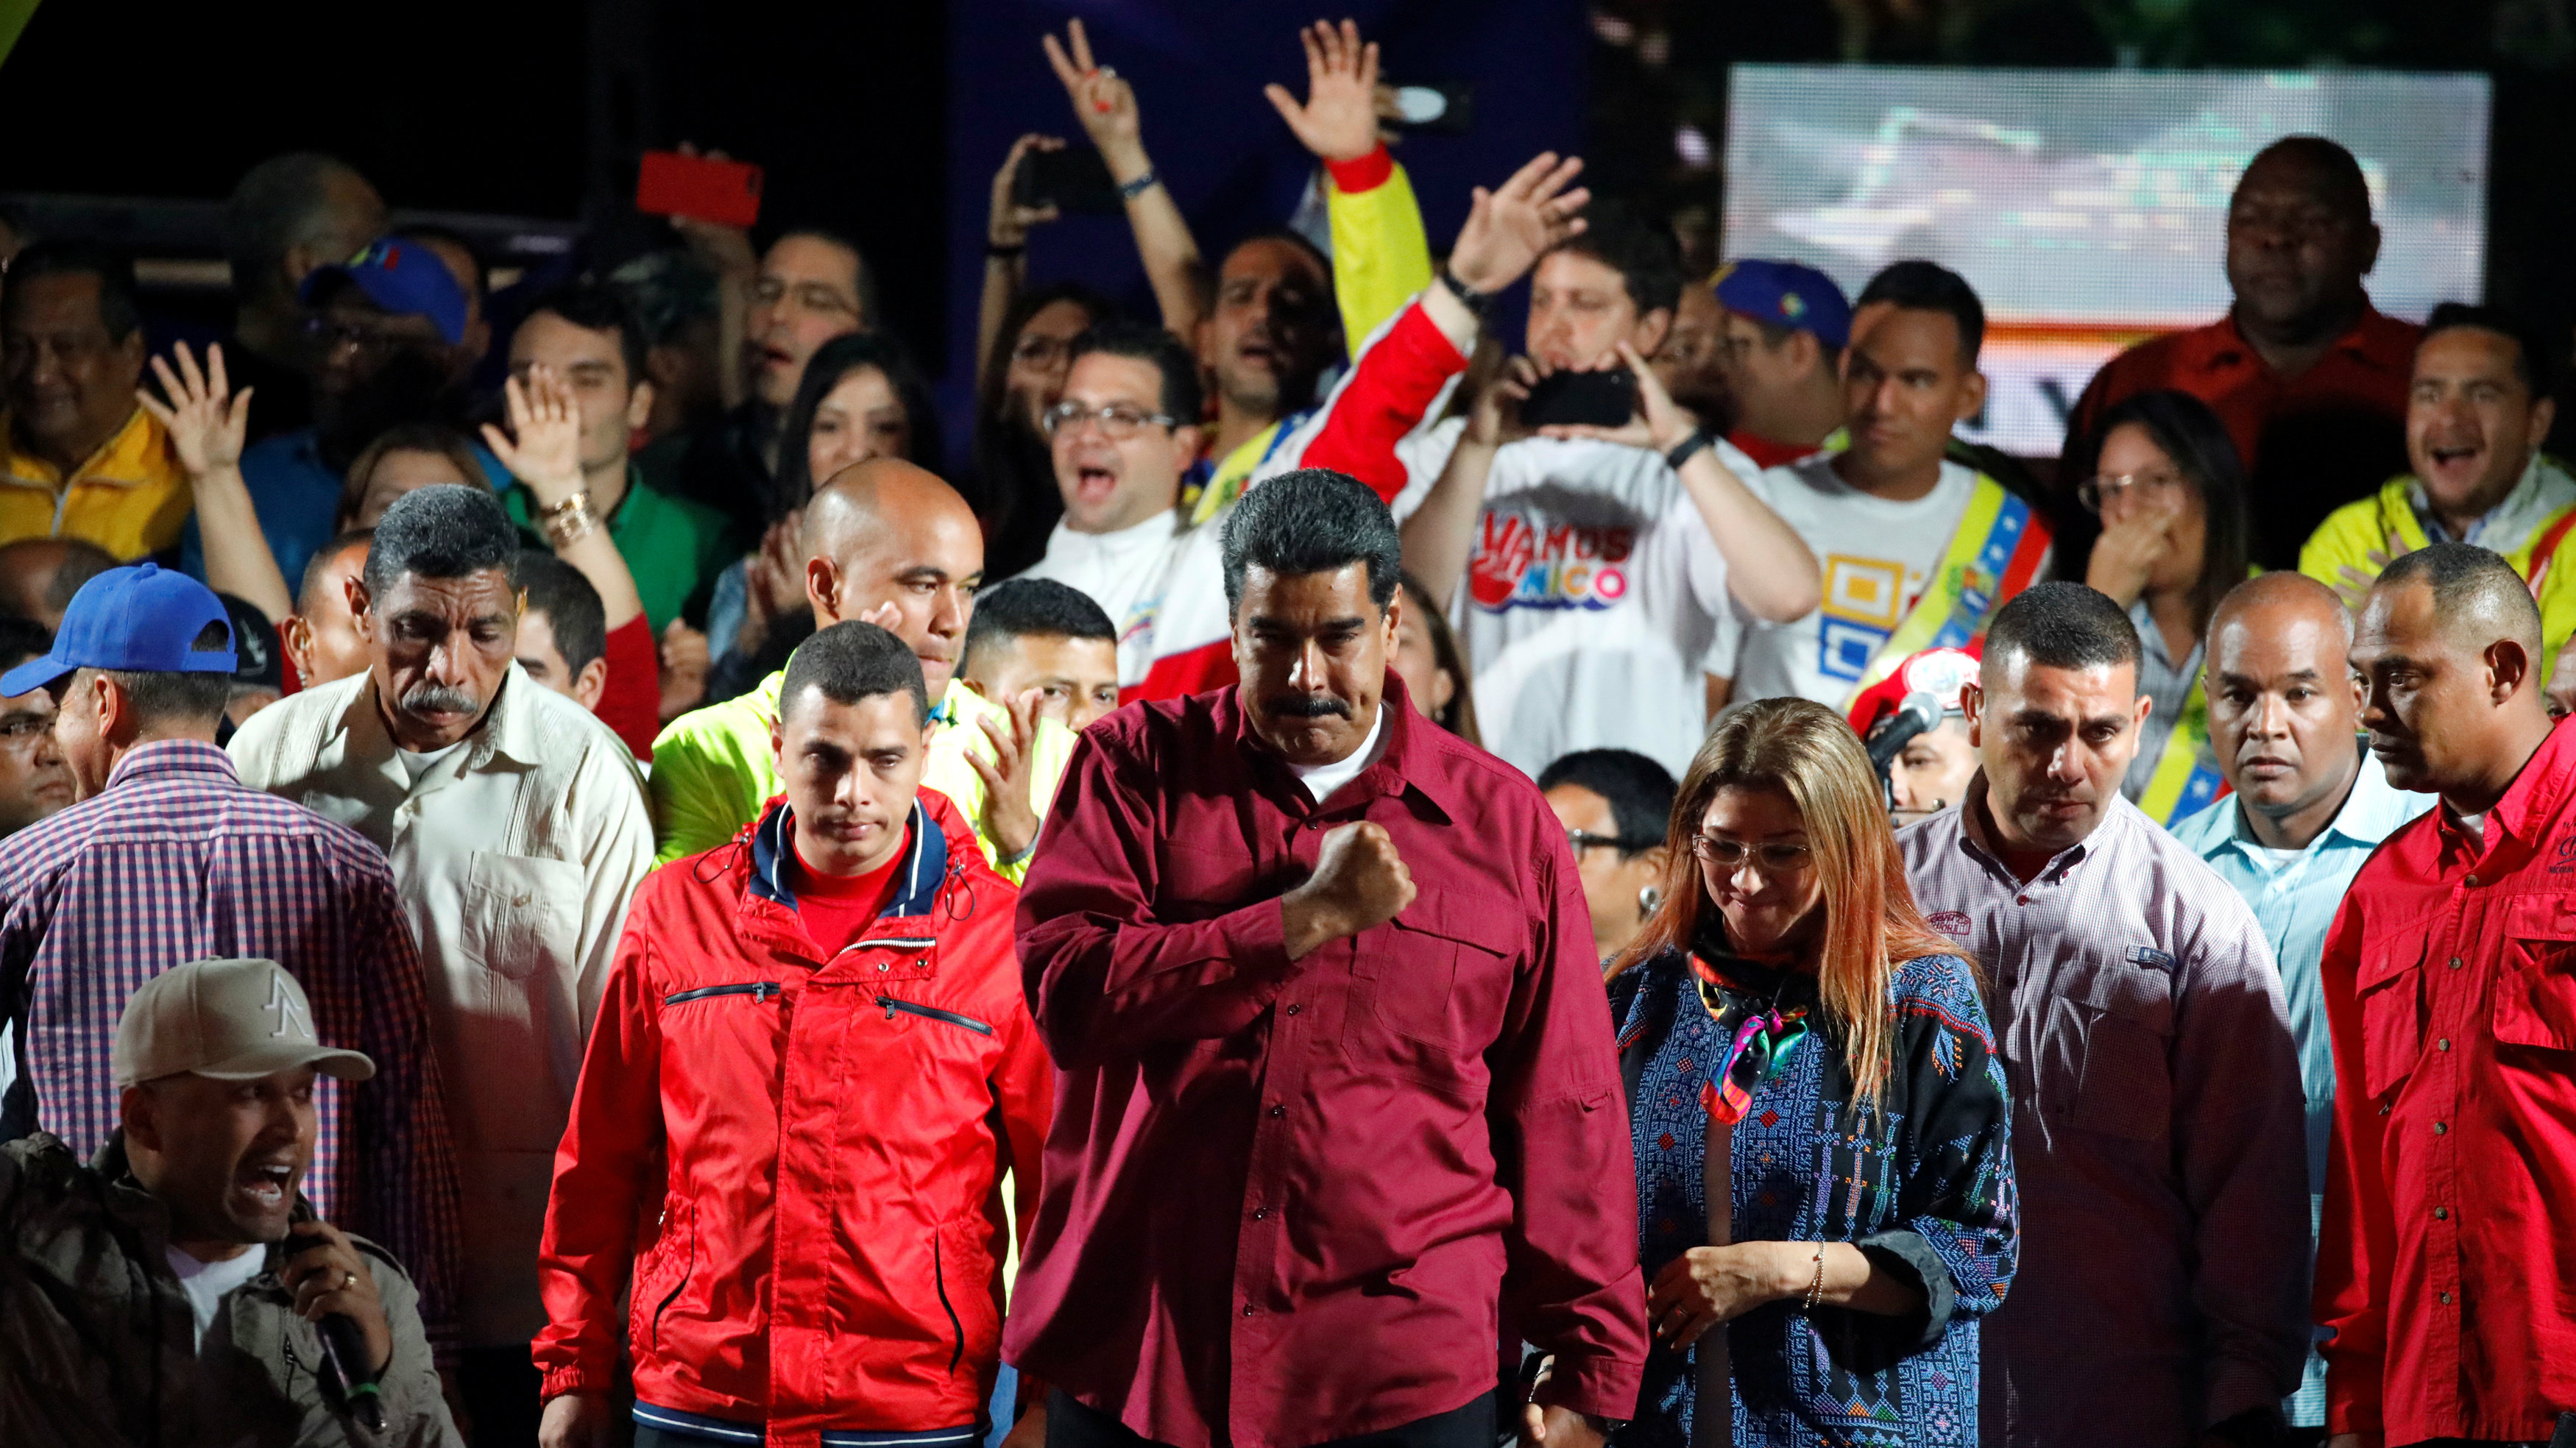 Venezuela's President Nicolas Maduro stands with supporters during a gathering after the results of the election were released